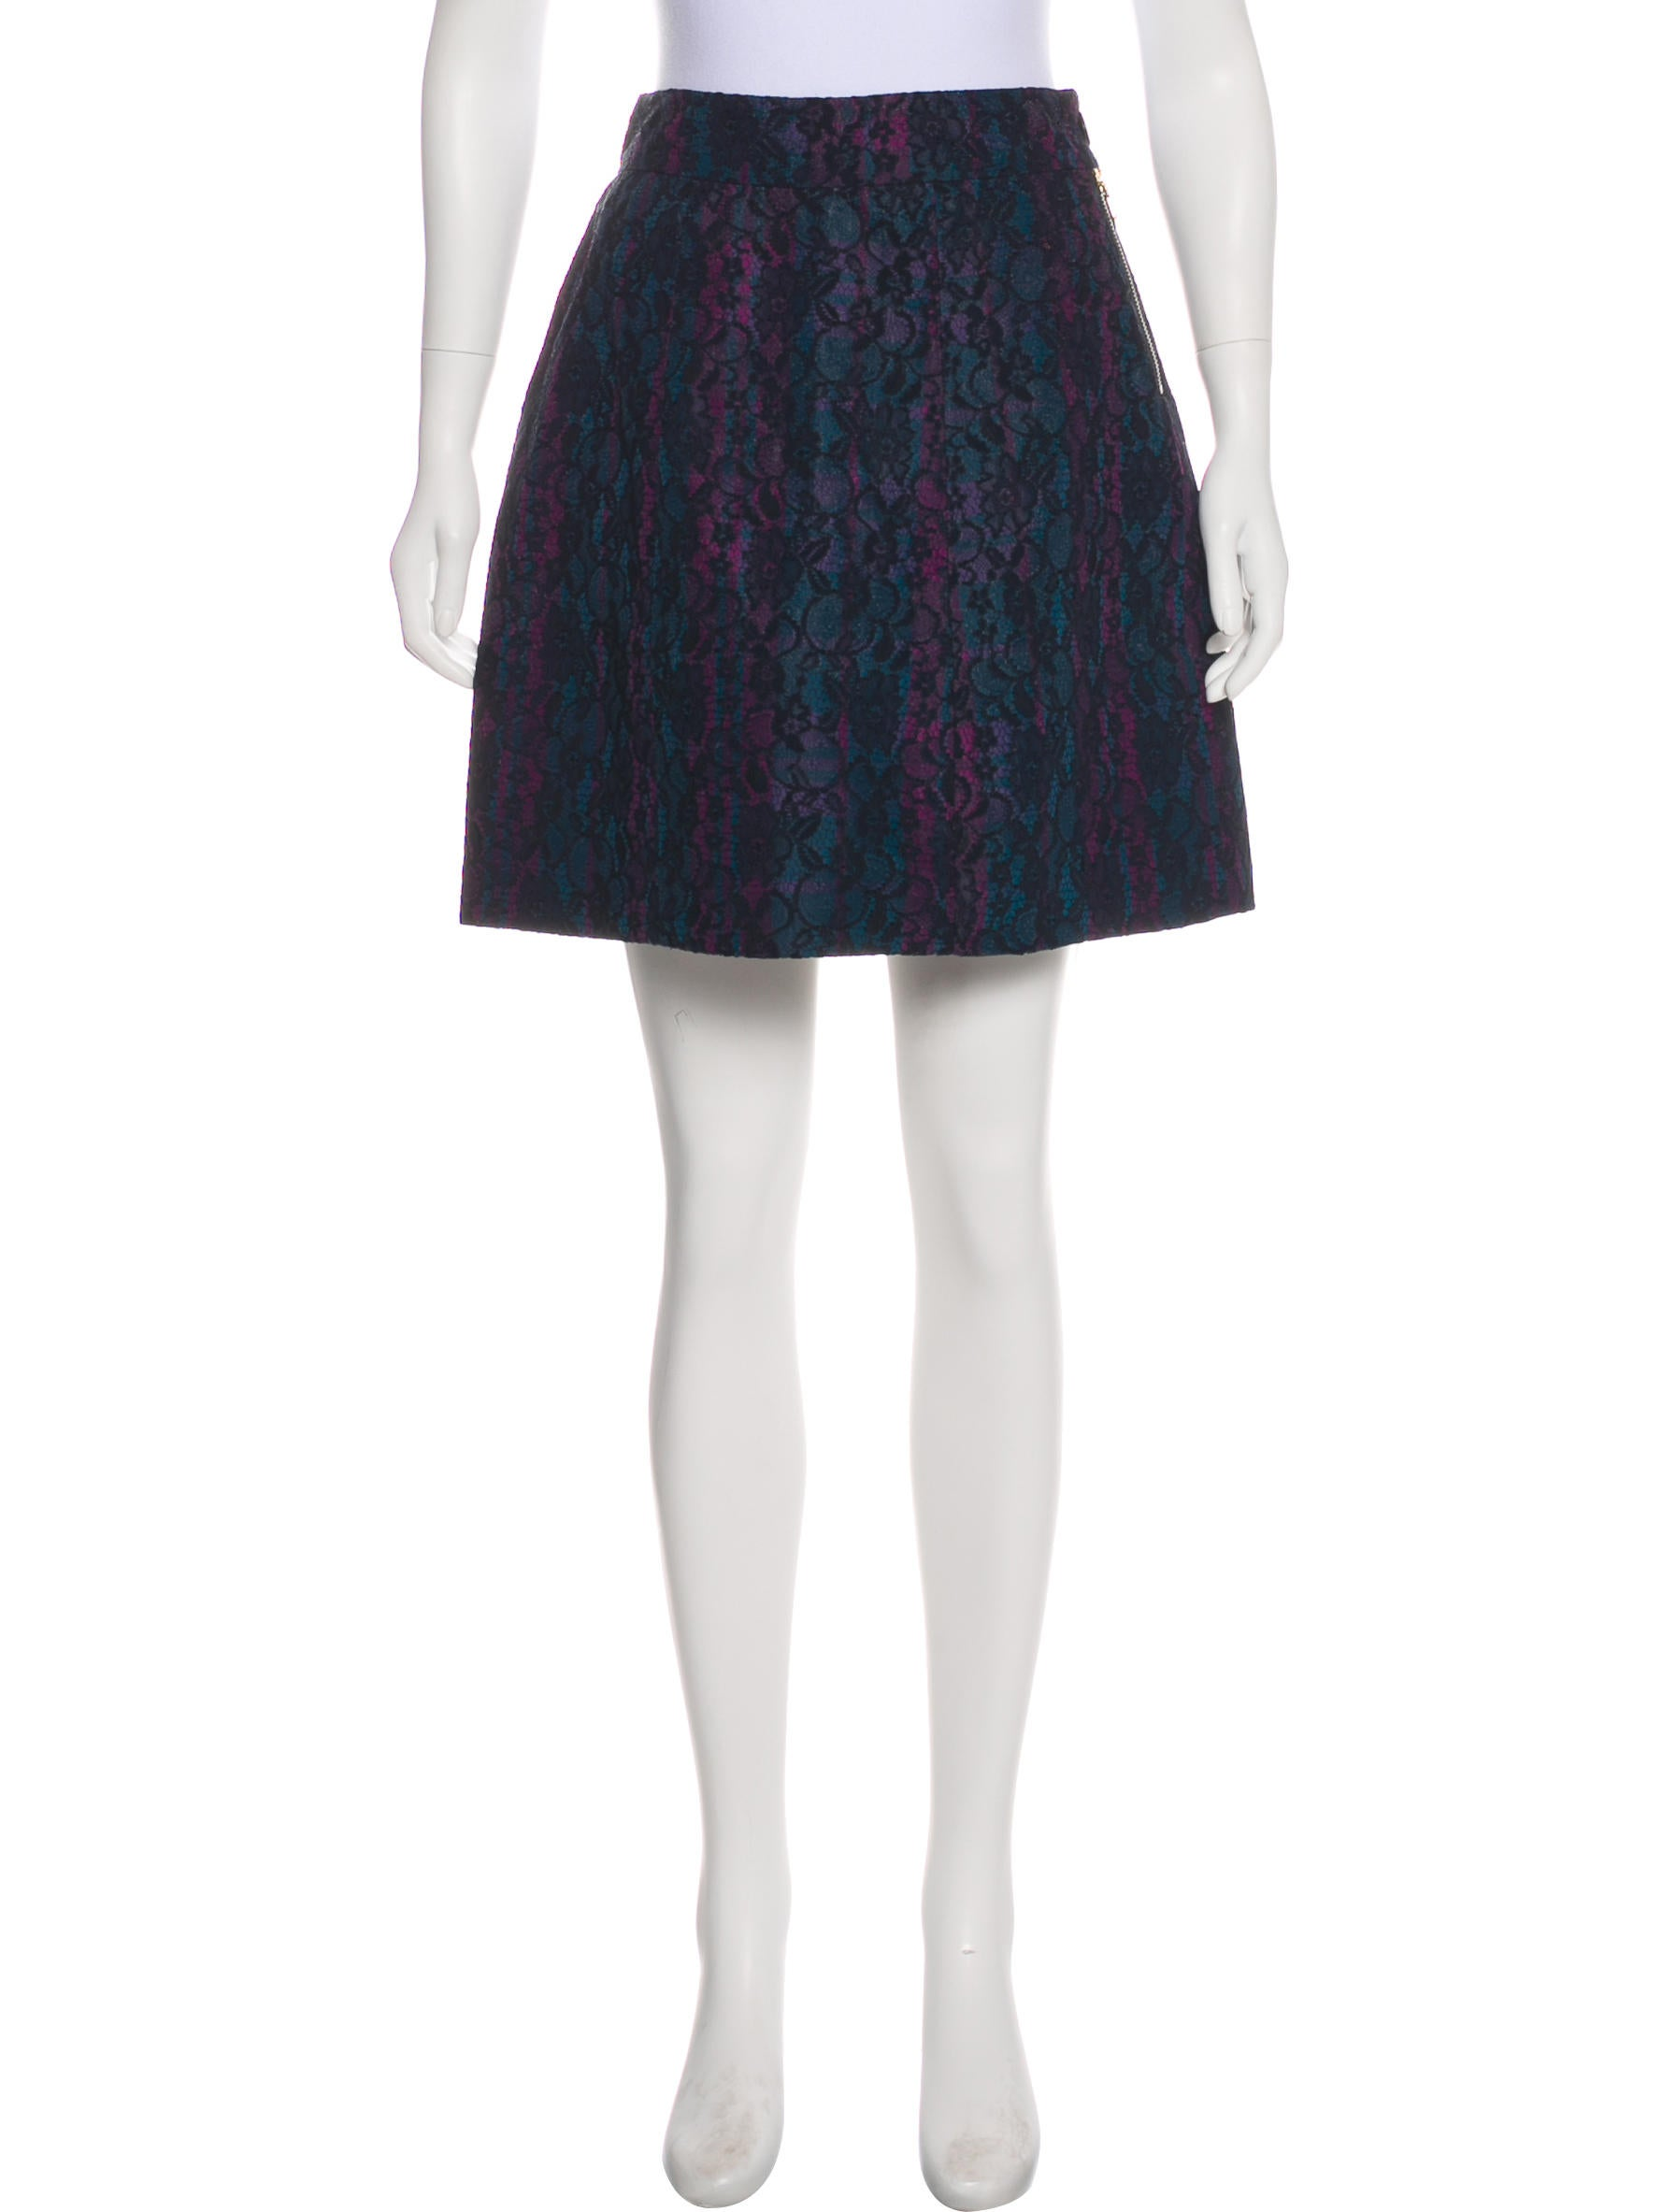 5a55c47b5 Marc by Marc Jacobs Lace Mini Skirt - Clothing - WMA29294 | The RealReal